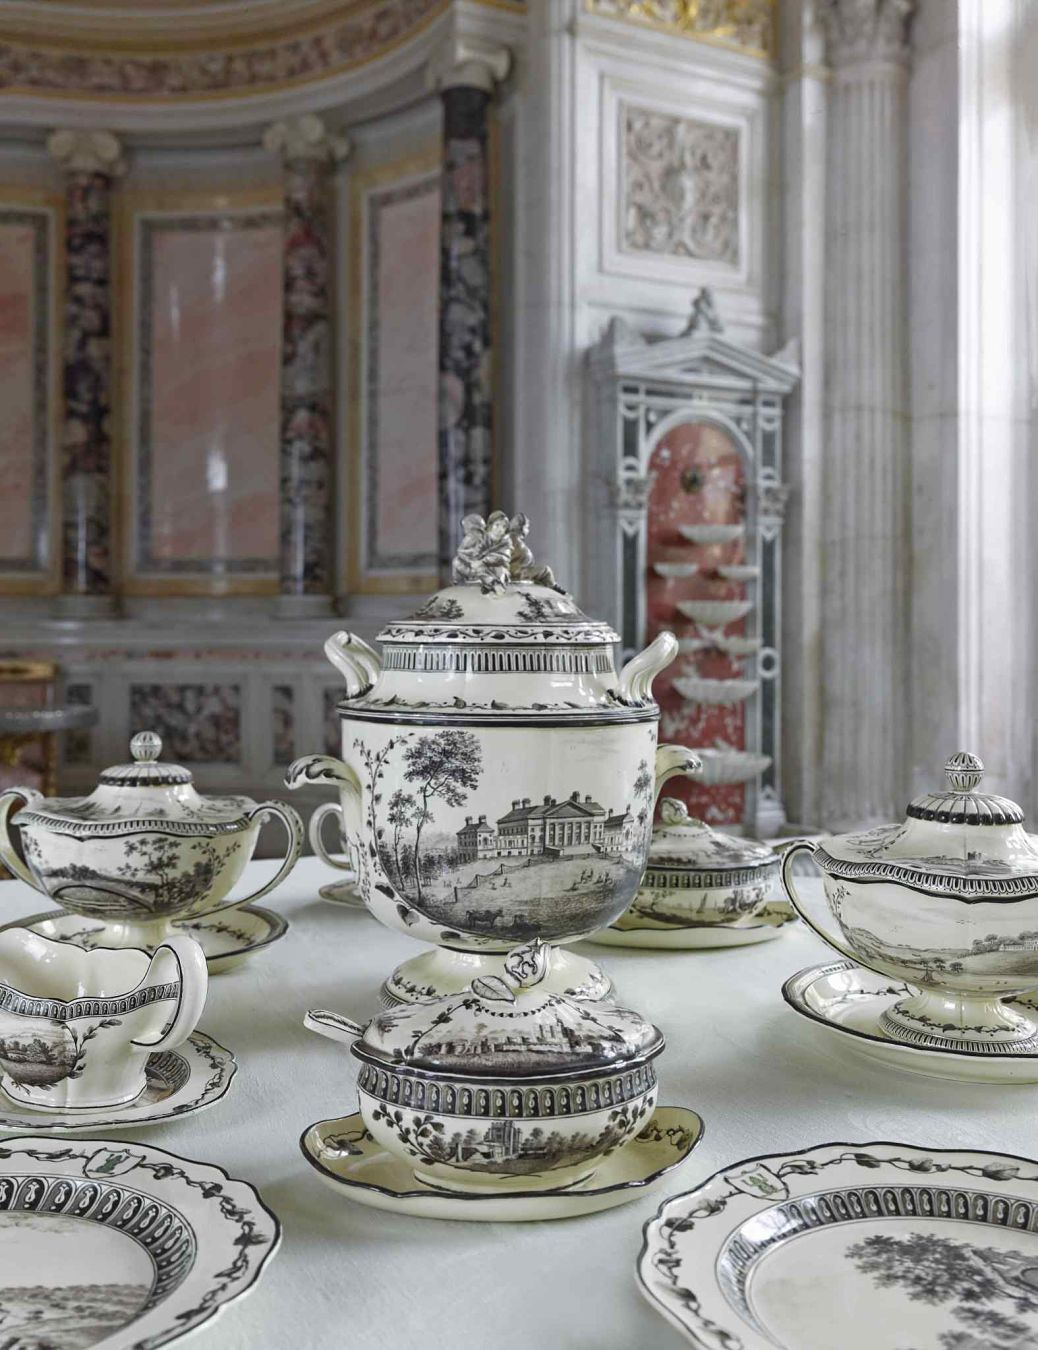 NUVO Daily Edit: Hermitage Dining with the Tsars